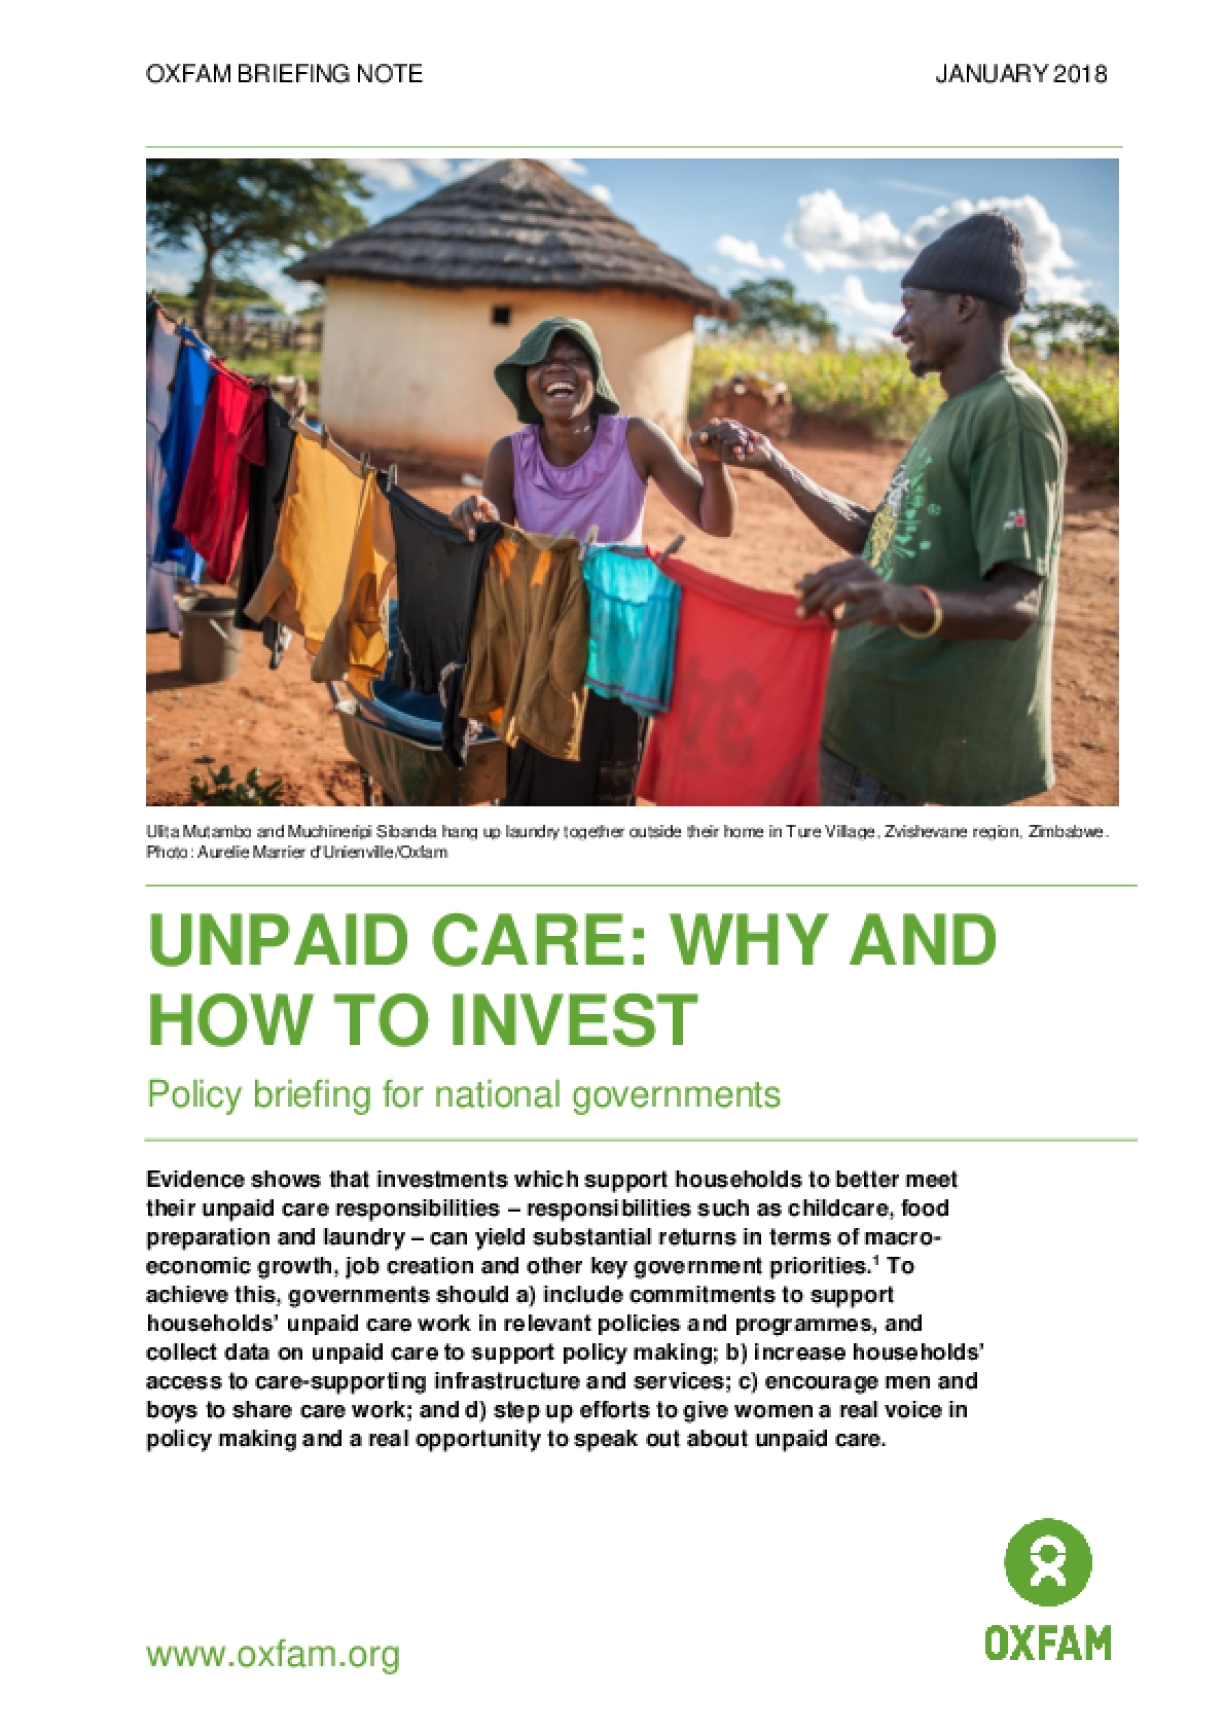 Unpaid Care - Why and How to Invest: Policy Briefing for National Governments's Poorest Countries